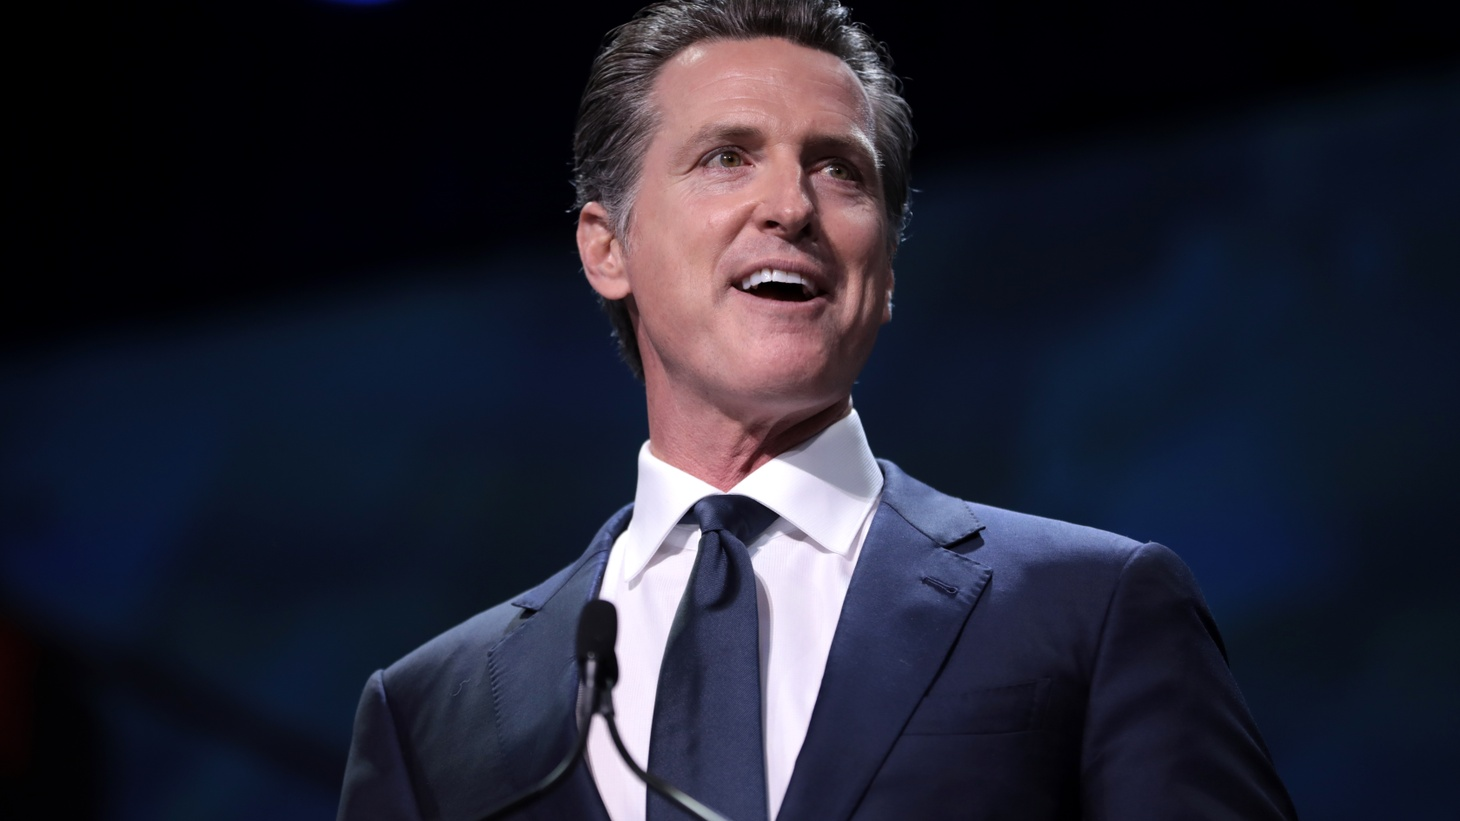 Governor Gavin Newsom speaking at the 2019 California Democratic Party State Convention at the George R. Moscone Convention Center in San Francisco, California.